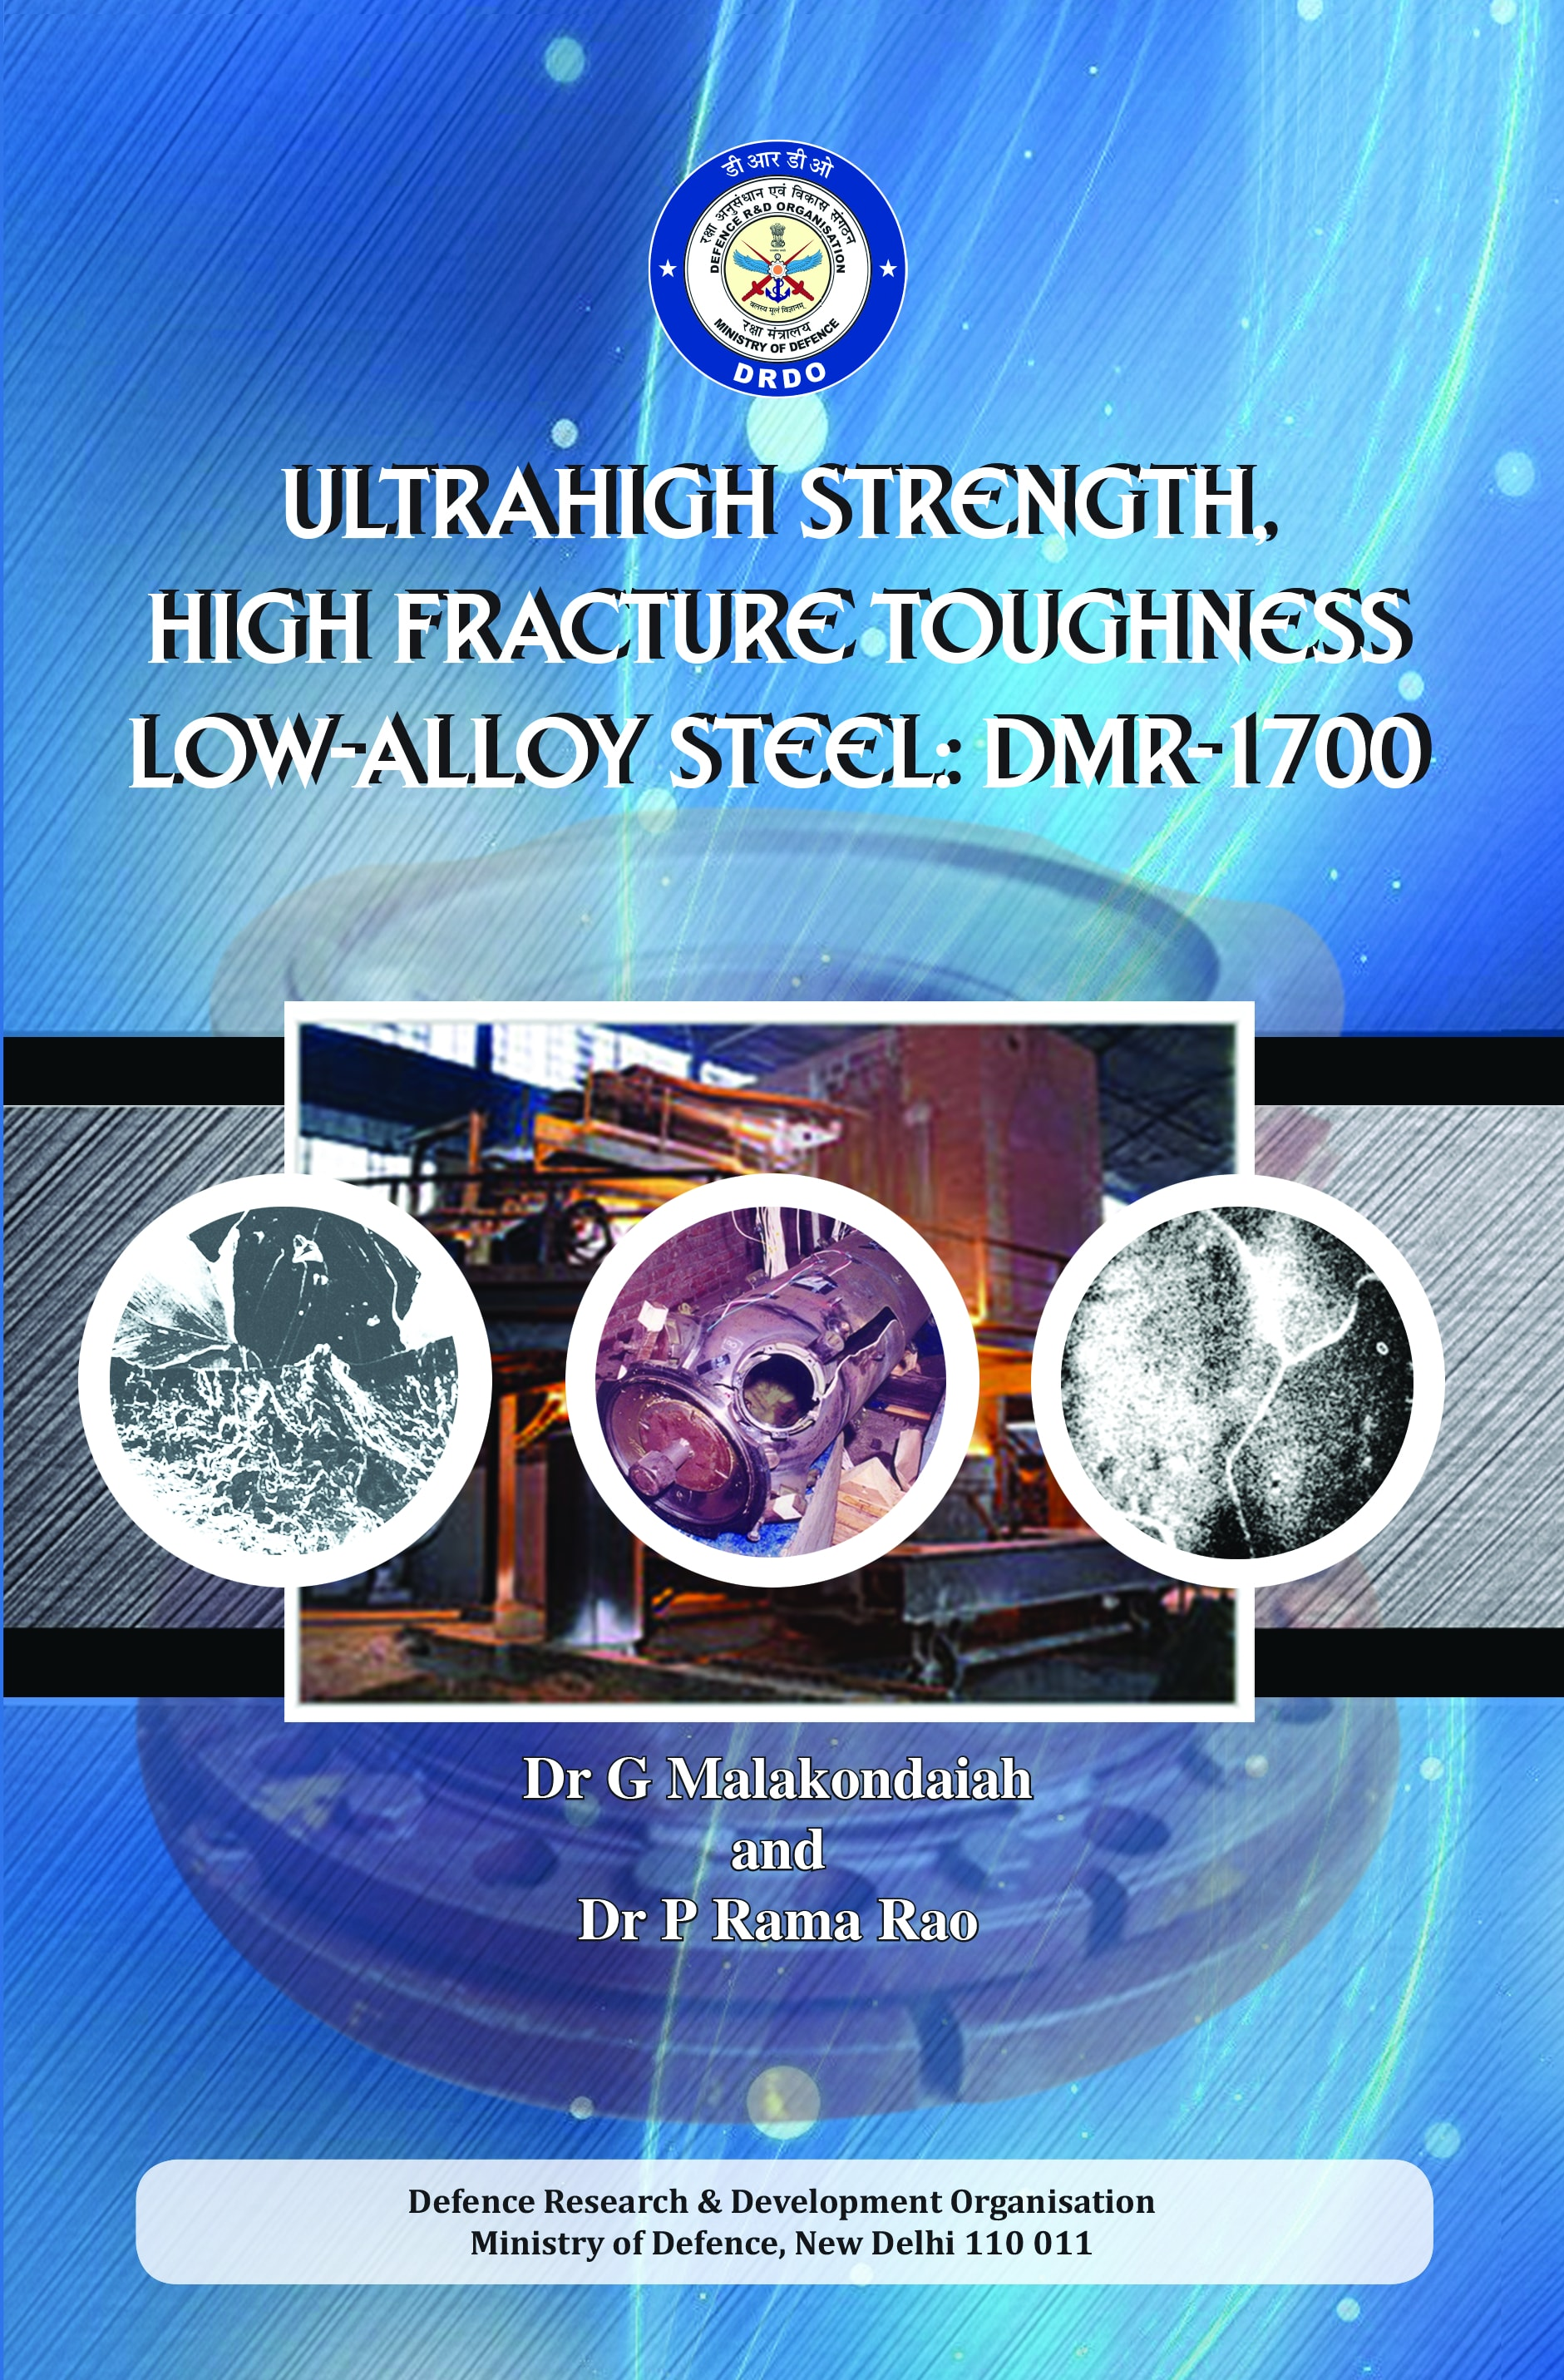 Ultrahigh Strength High Fracture Toughness Low alloy Steel DMR-1700